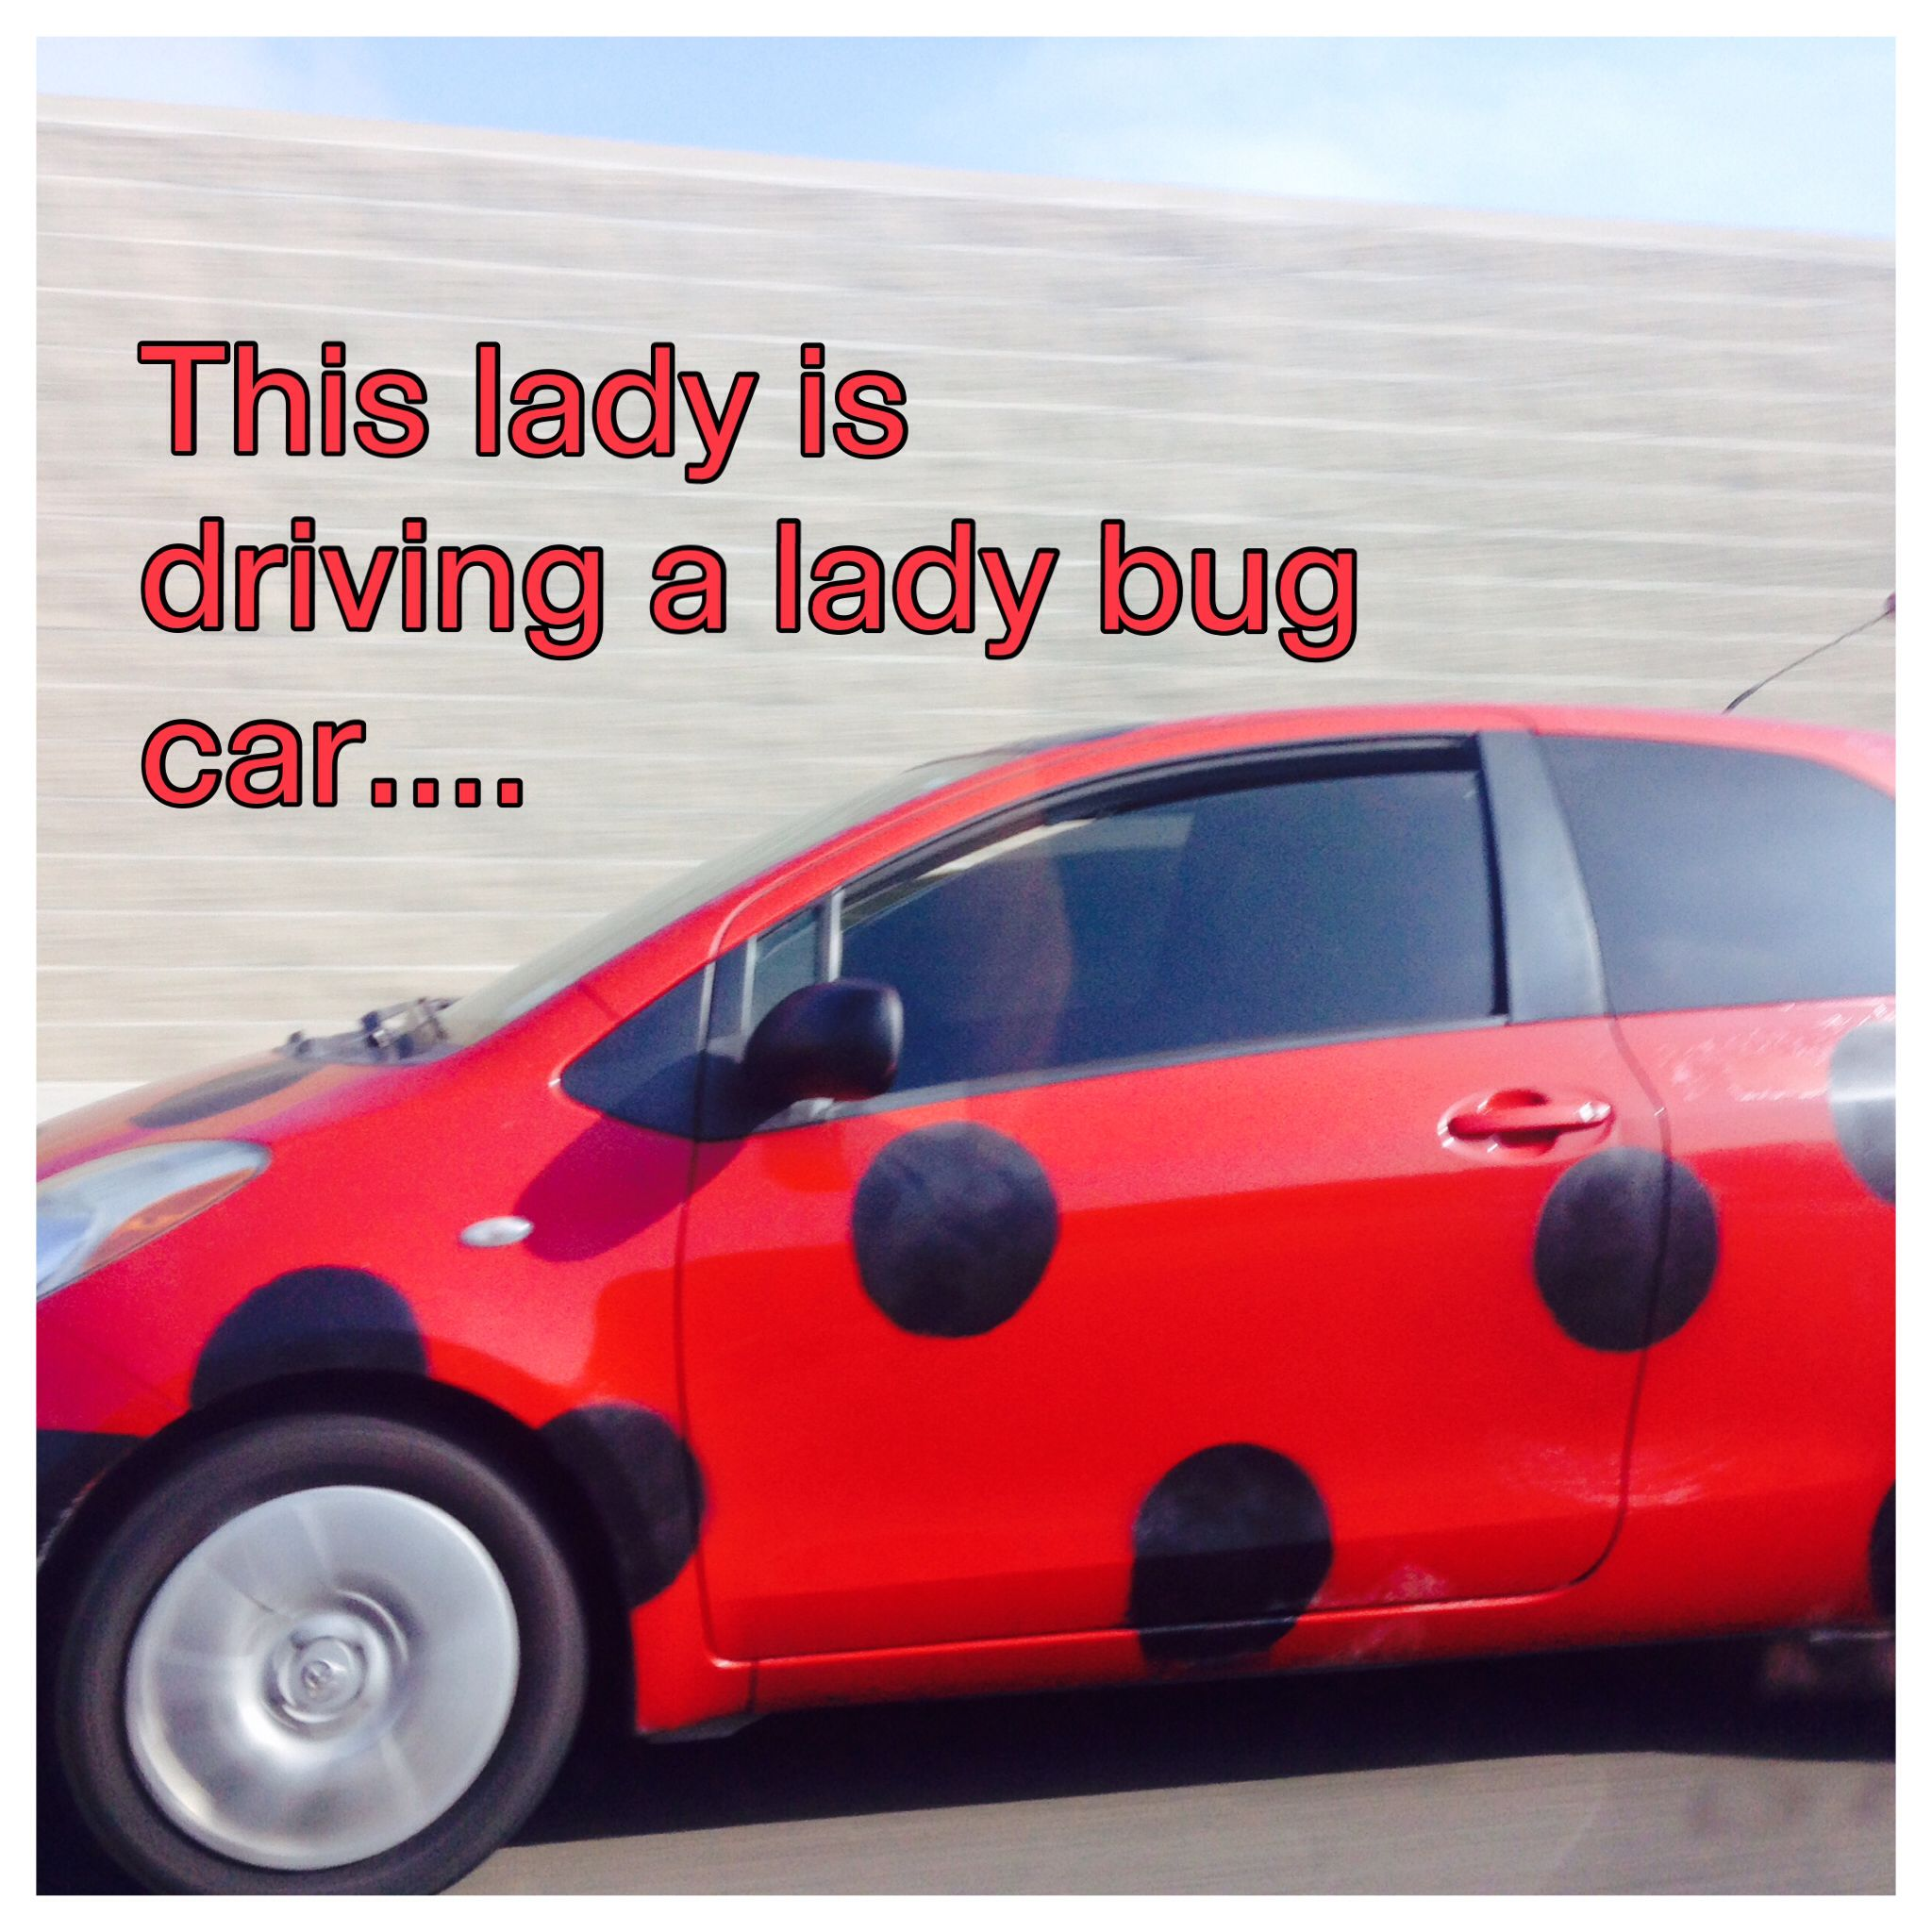 This Is To Funny Lol P Bug Car Toy Car Lol